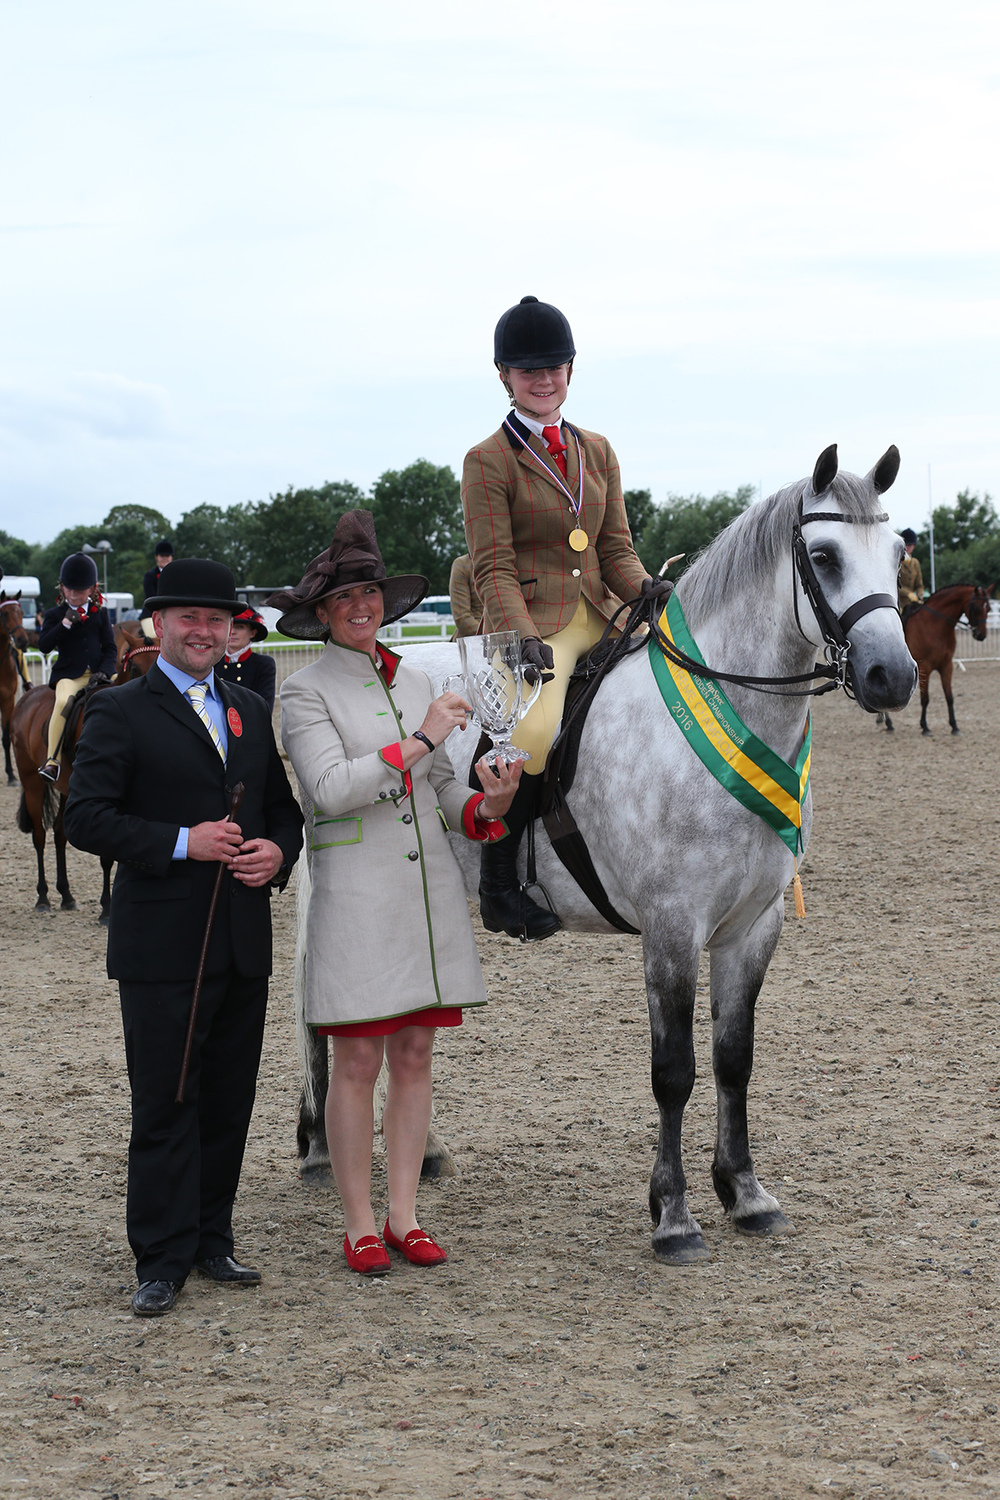 Isabella and Inverin Paddy receiving the Topspec Supreme Pretty Polly Championship award from judges Cindy Henson and Adam Brooke.